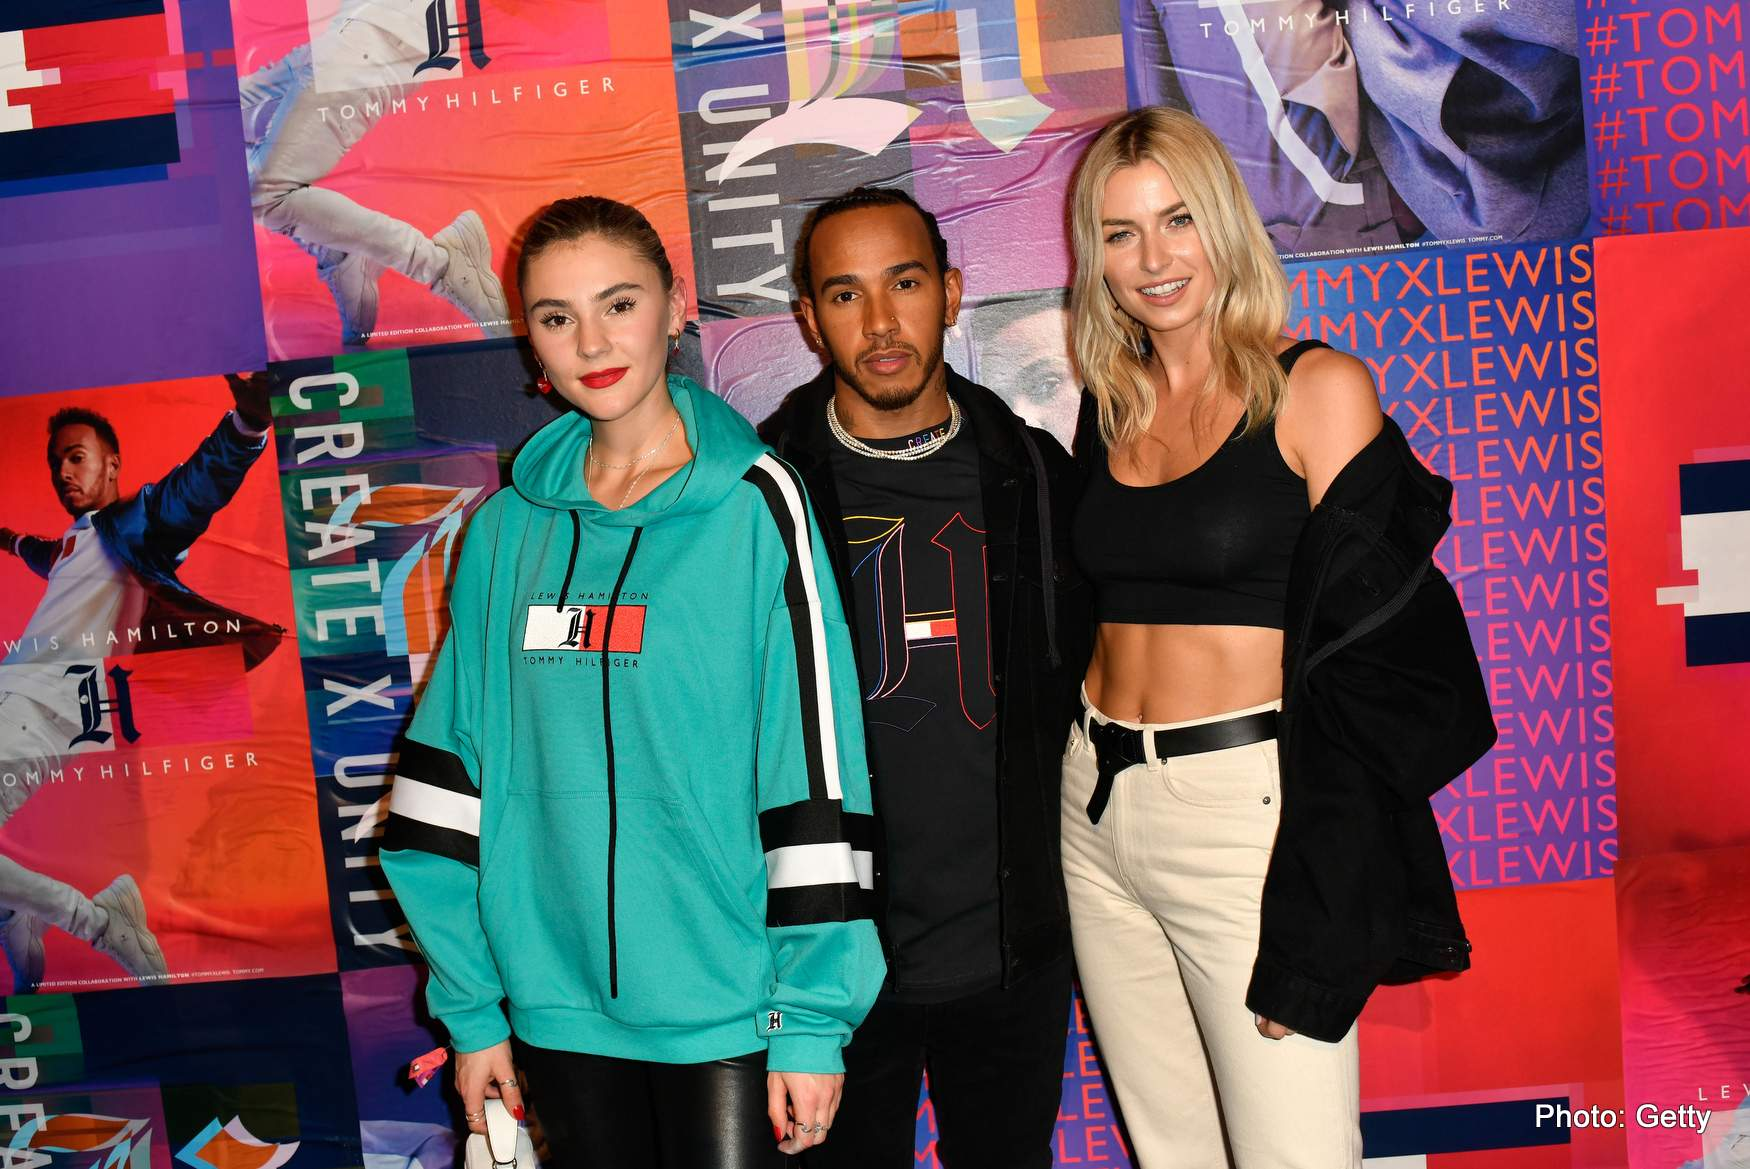 Lewis-hamilton-tommy-hilfiger-fashion-range-launch-photo-07-Mar-19-9-21-46-PM-1.jpg